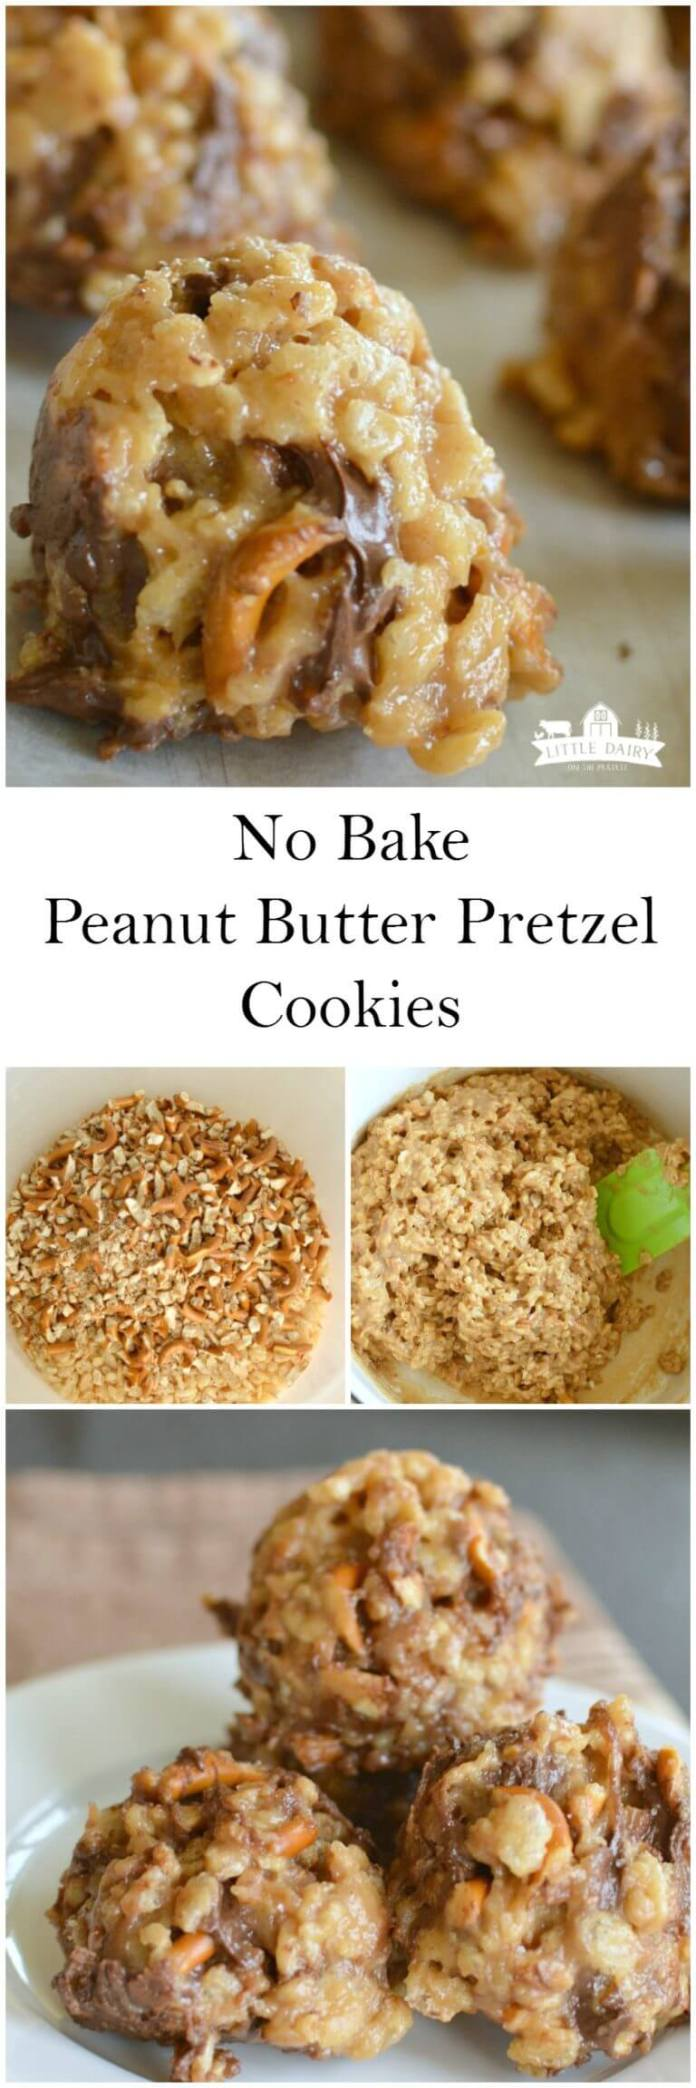 No Bake Peanut Butter Pretzel Cookies – Perfect for the Holidays